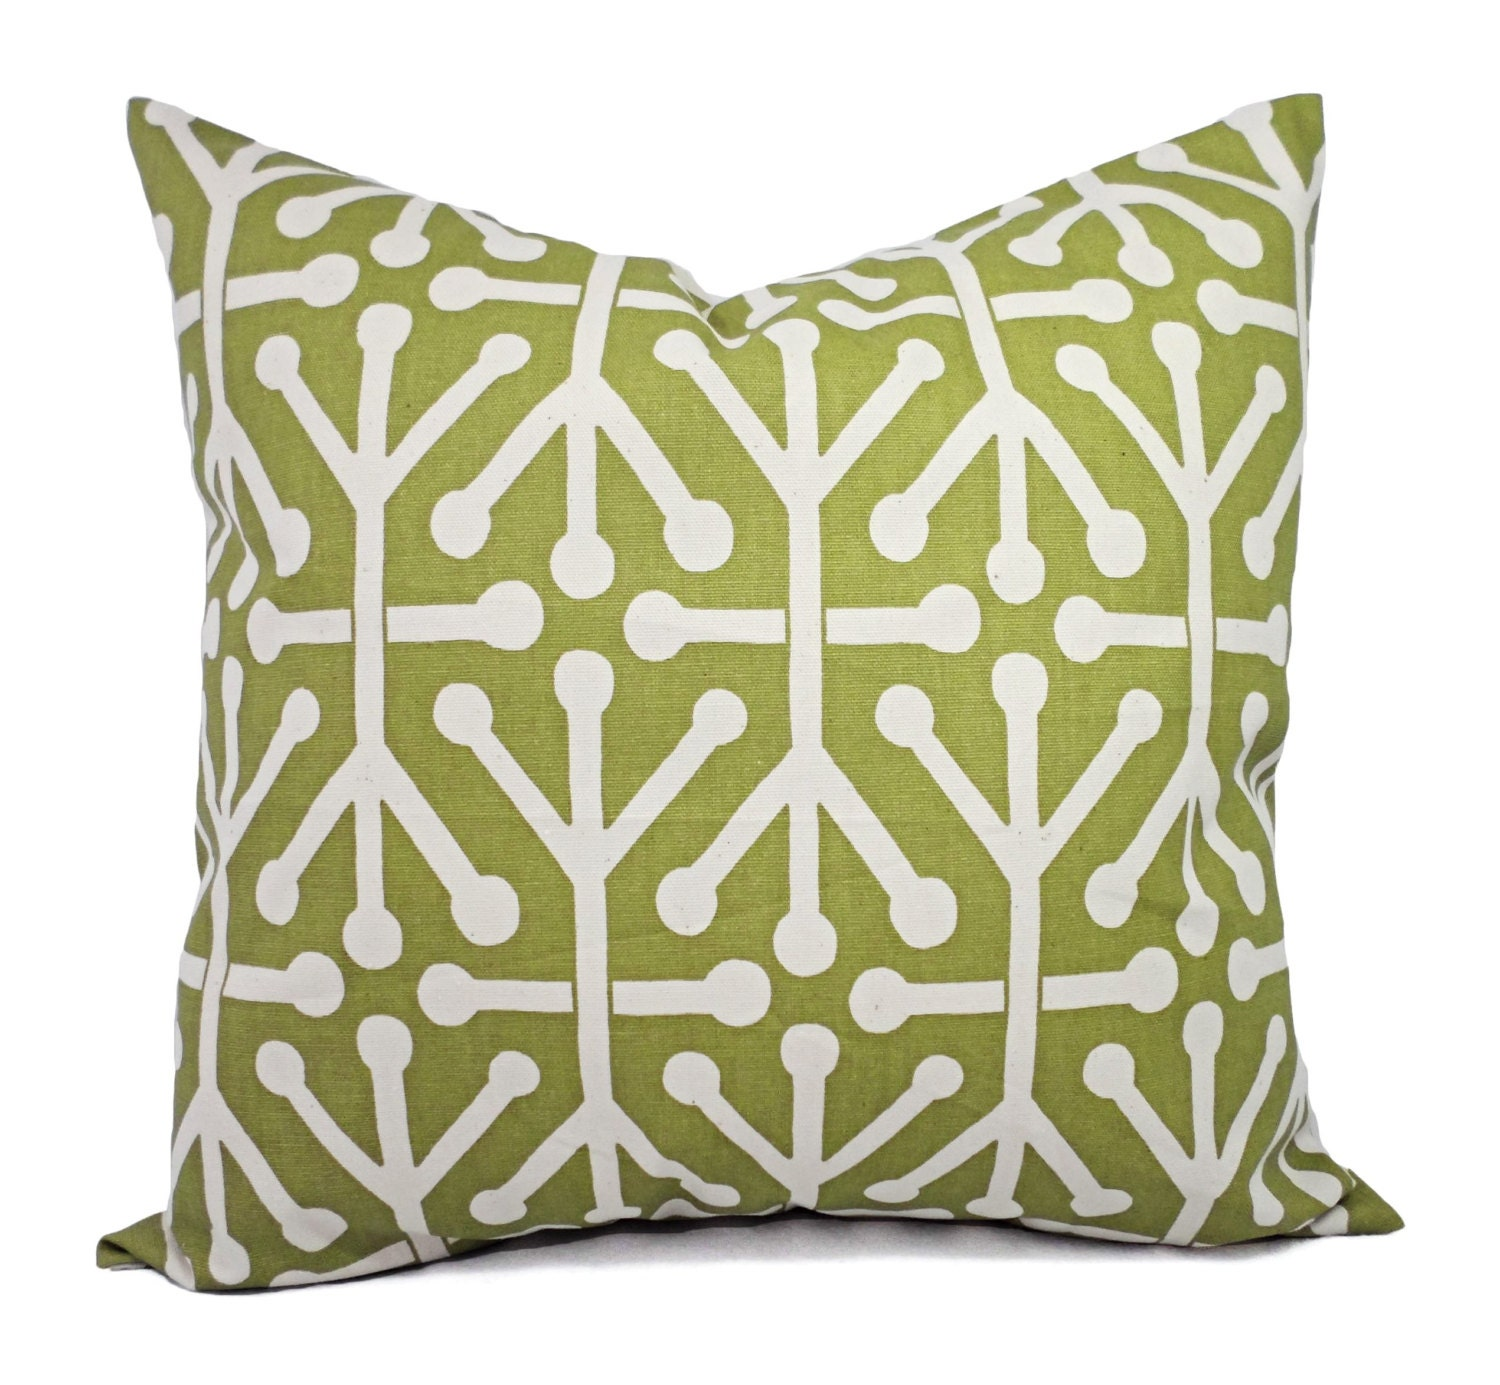 Decorative Pillows For Bed Green : Green Decorative Pillow Covers Two Green by CastawayCoveDecor